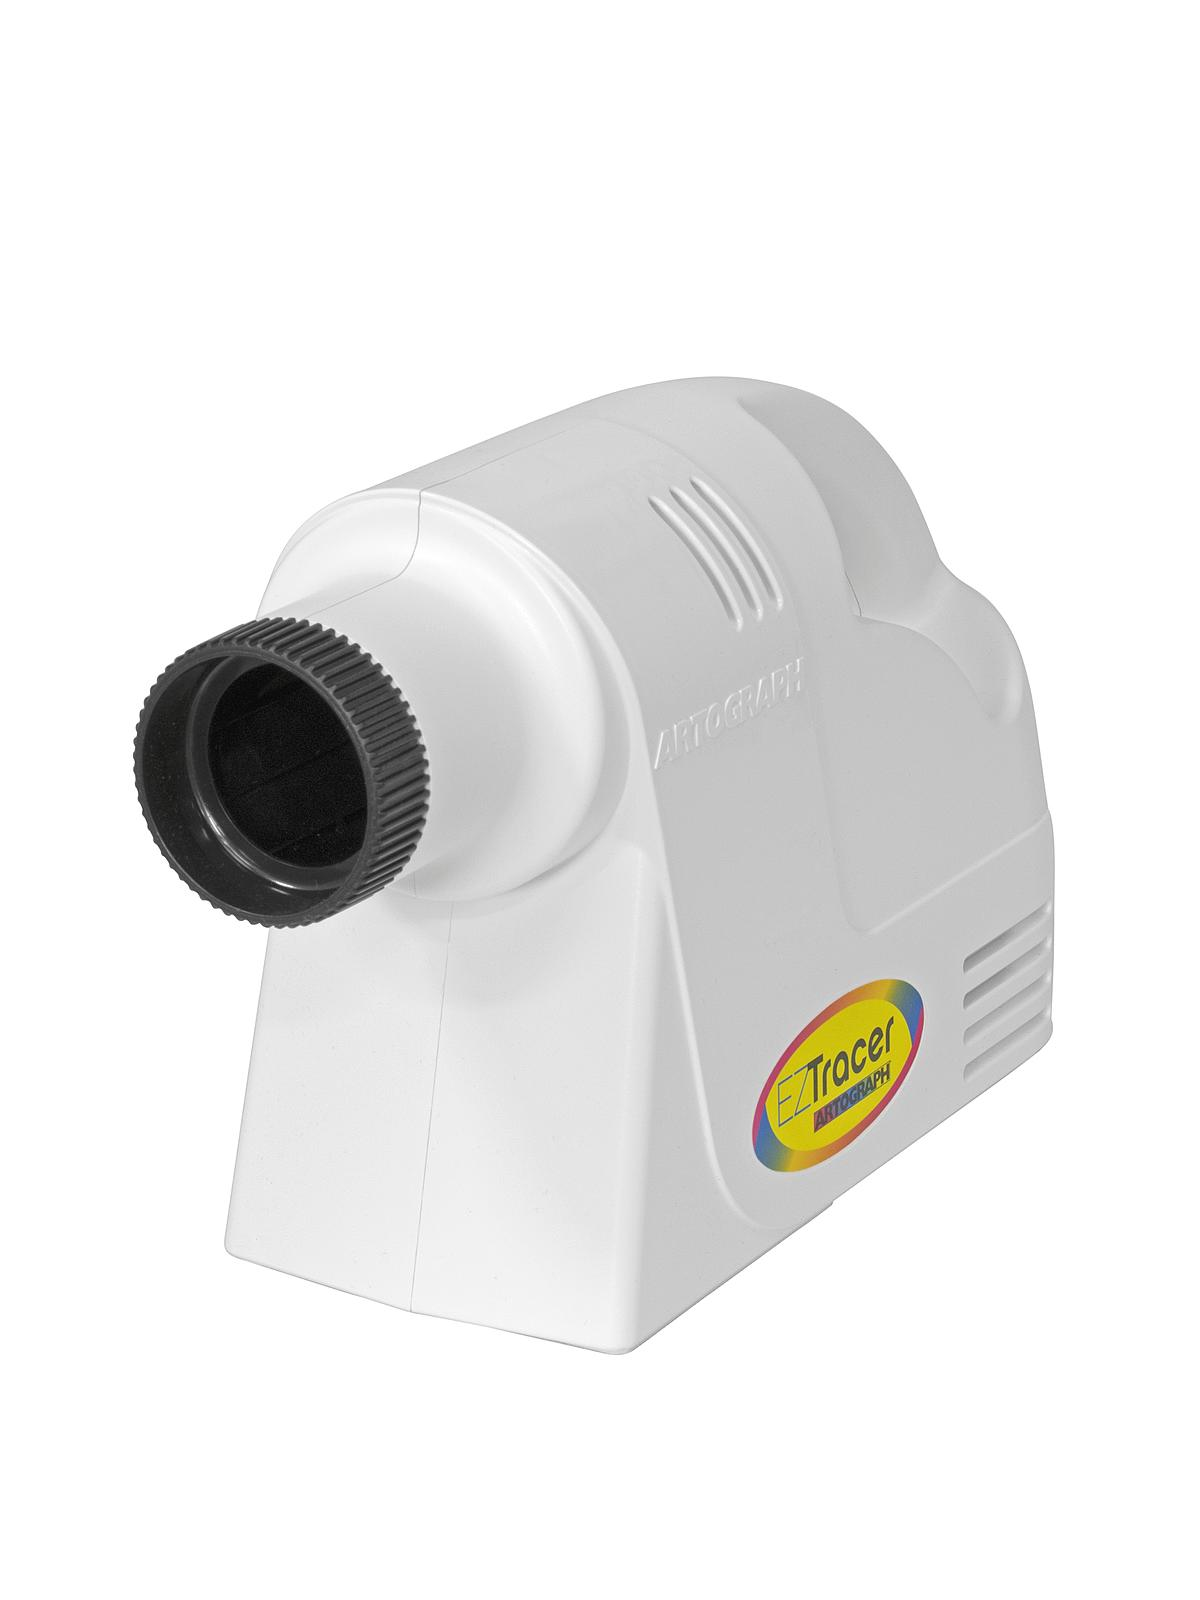 Ez Tracer Projector Ez Tracer Projector